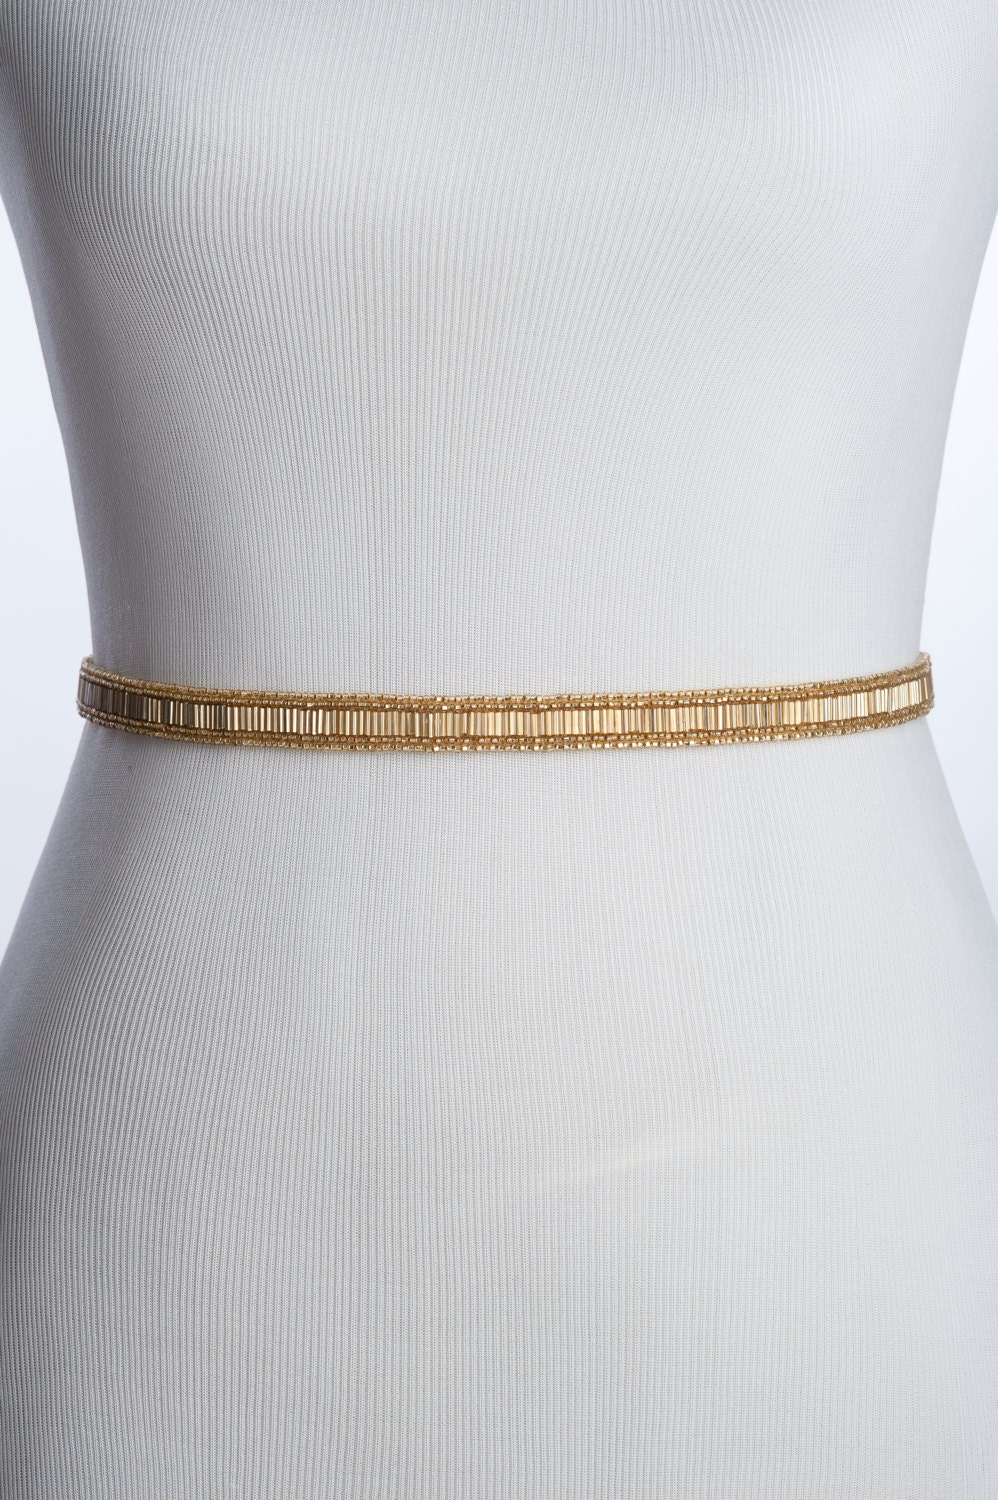 gold beaded wedding belt gold bridal by